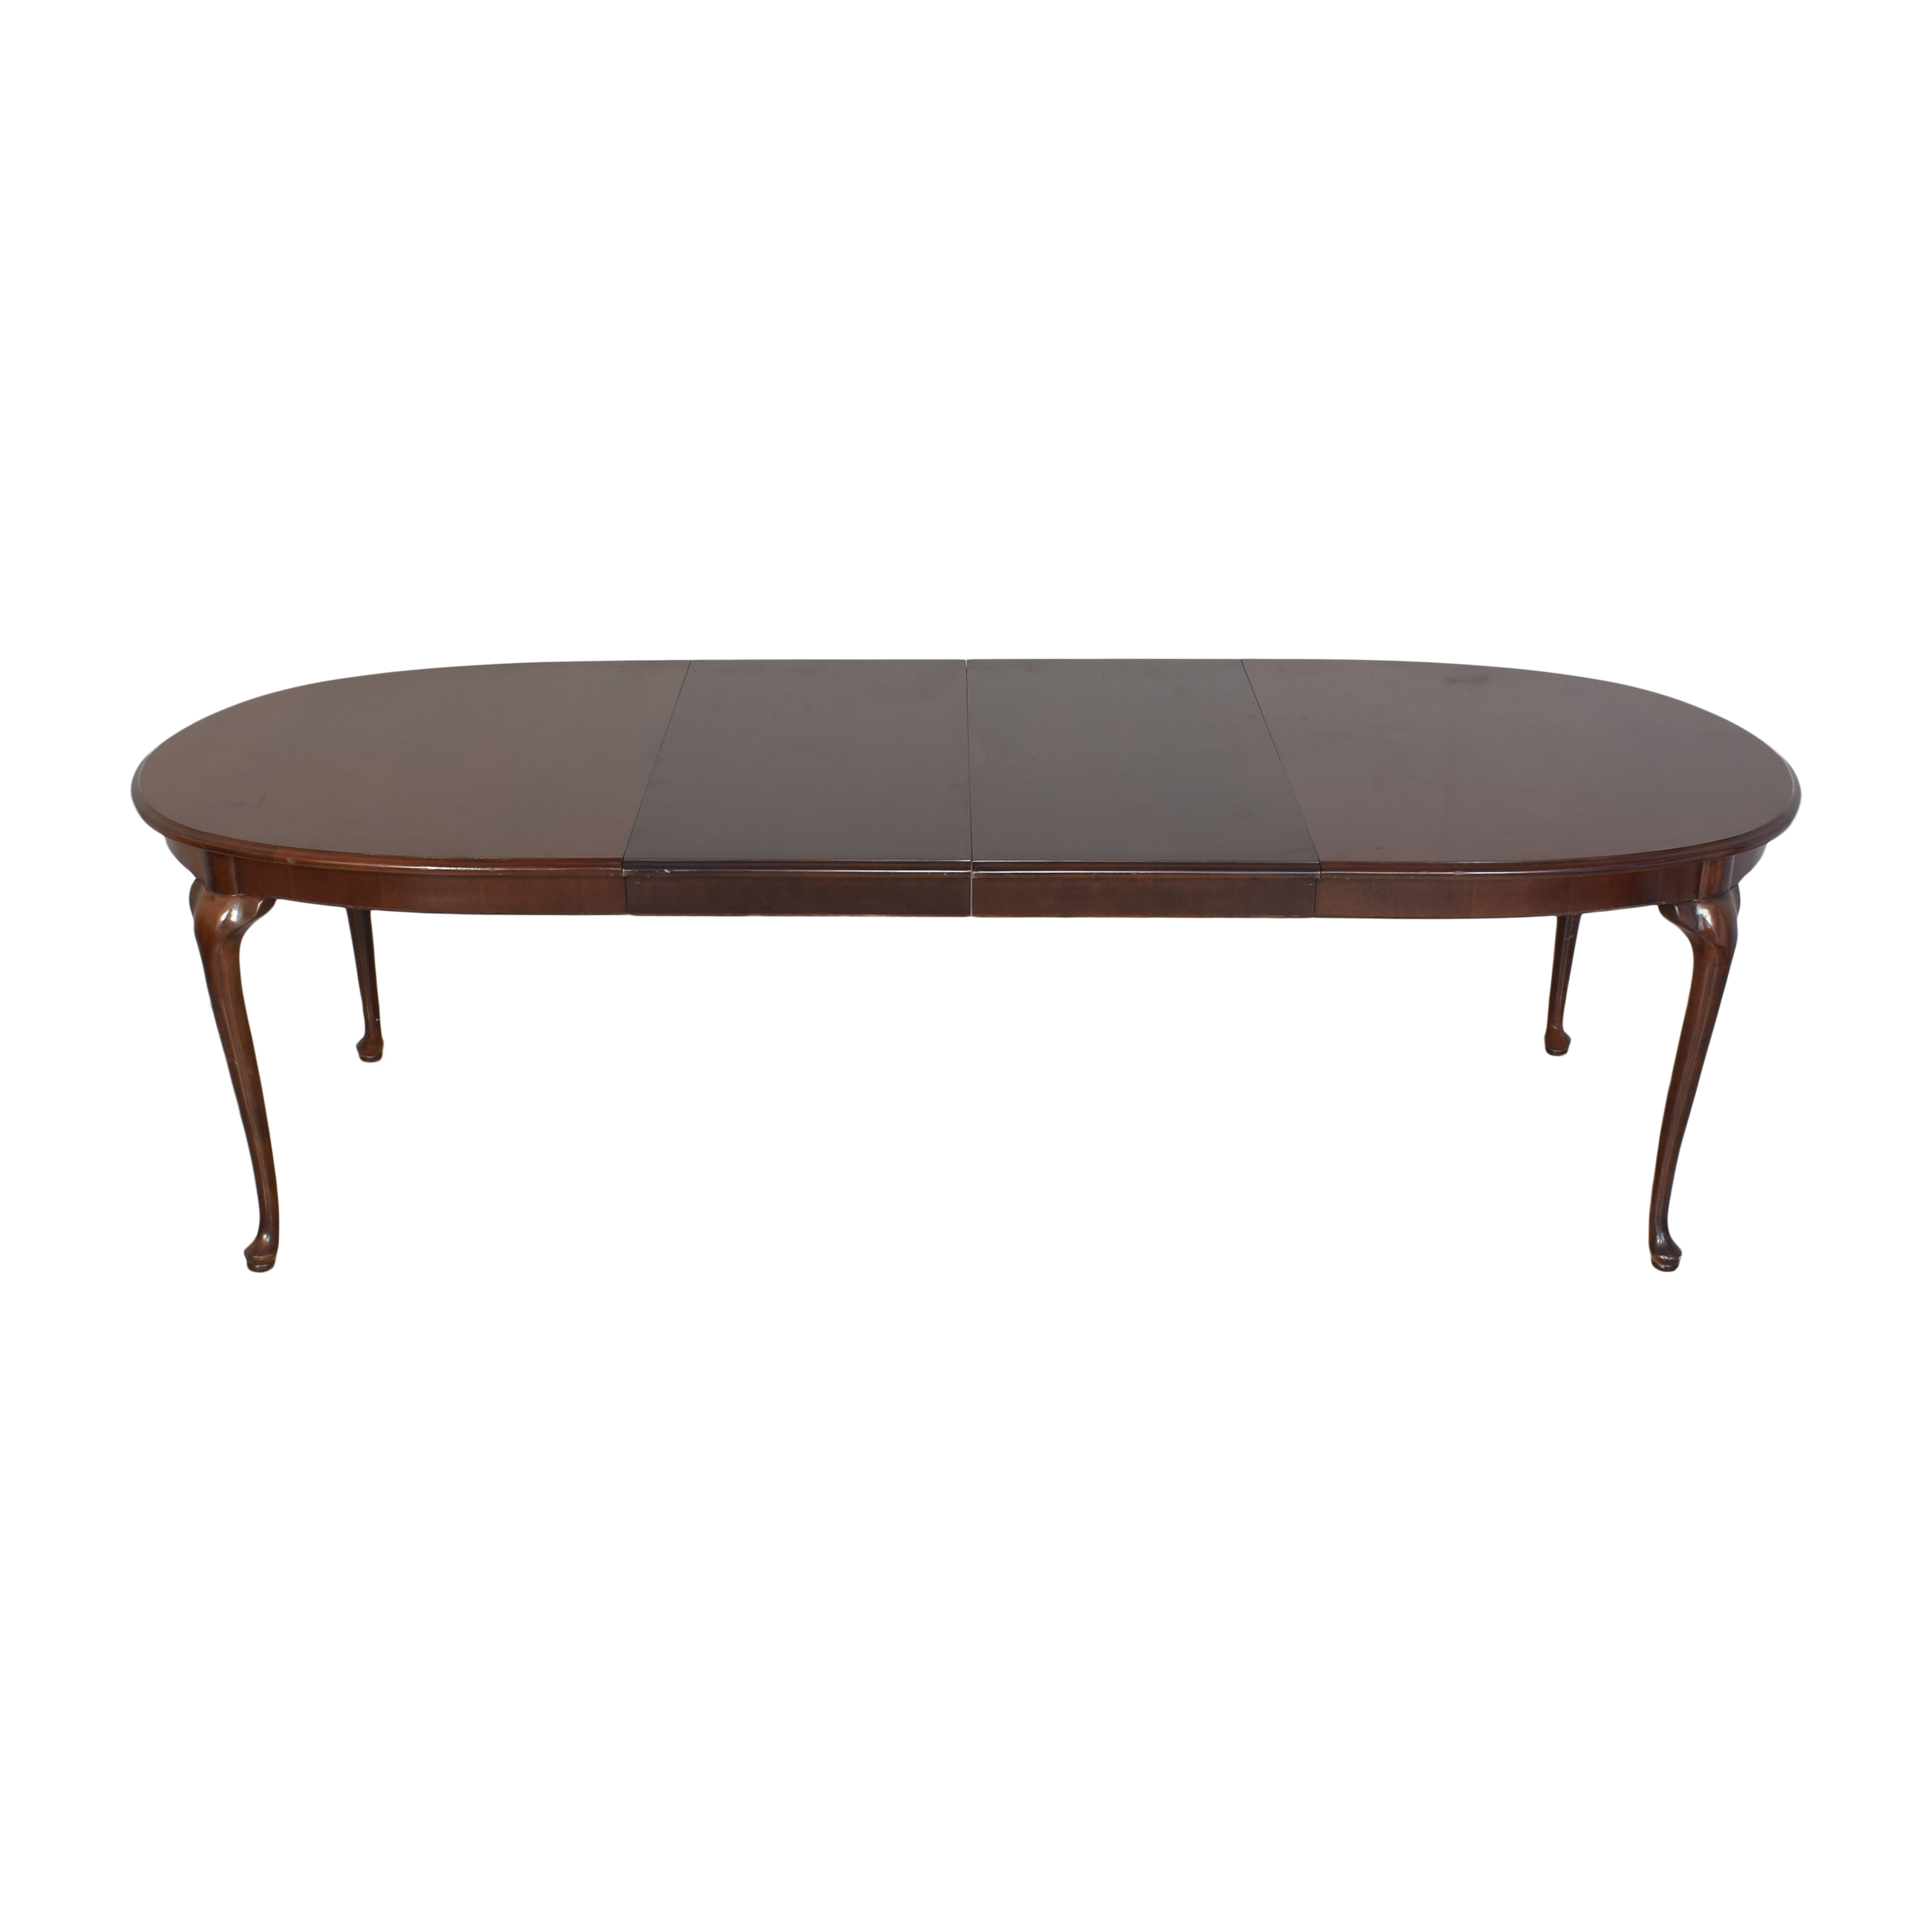 Thomasville Thomasville Oval Extendable Dining Table dimensions